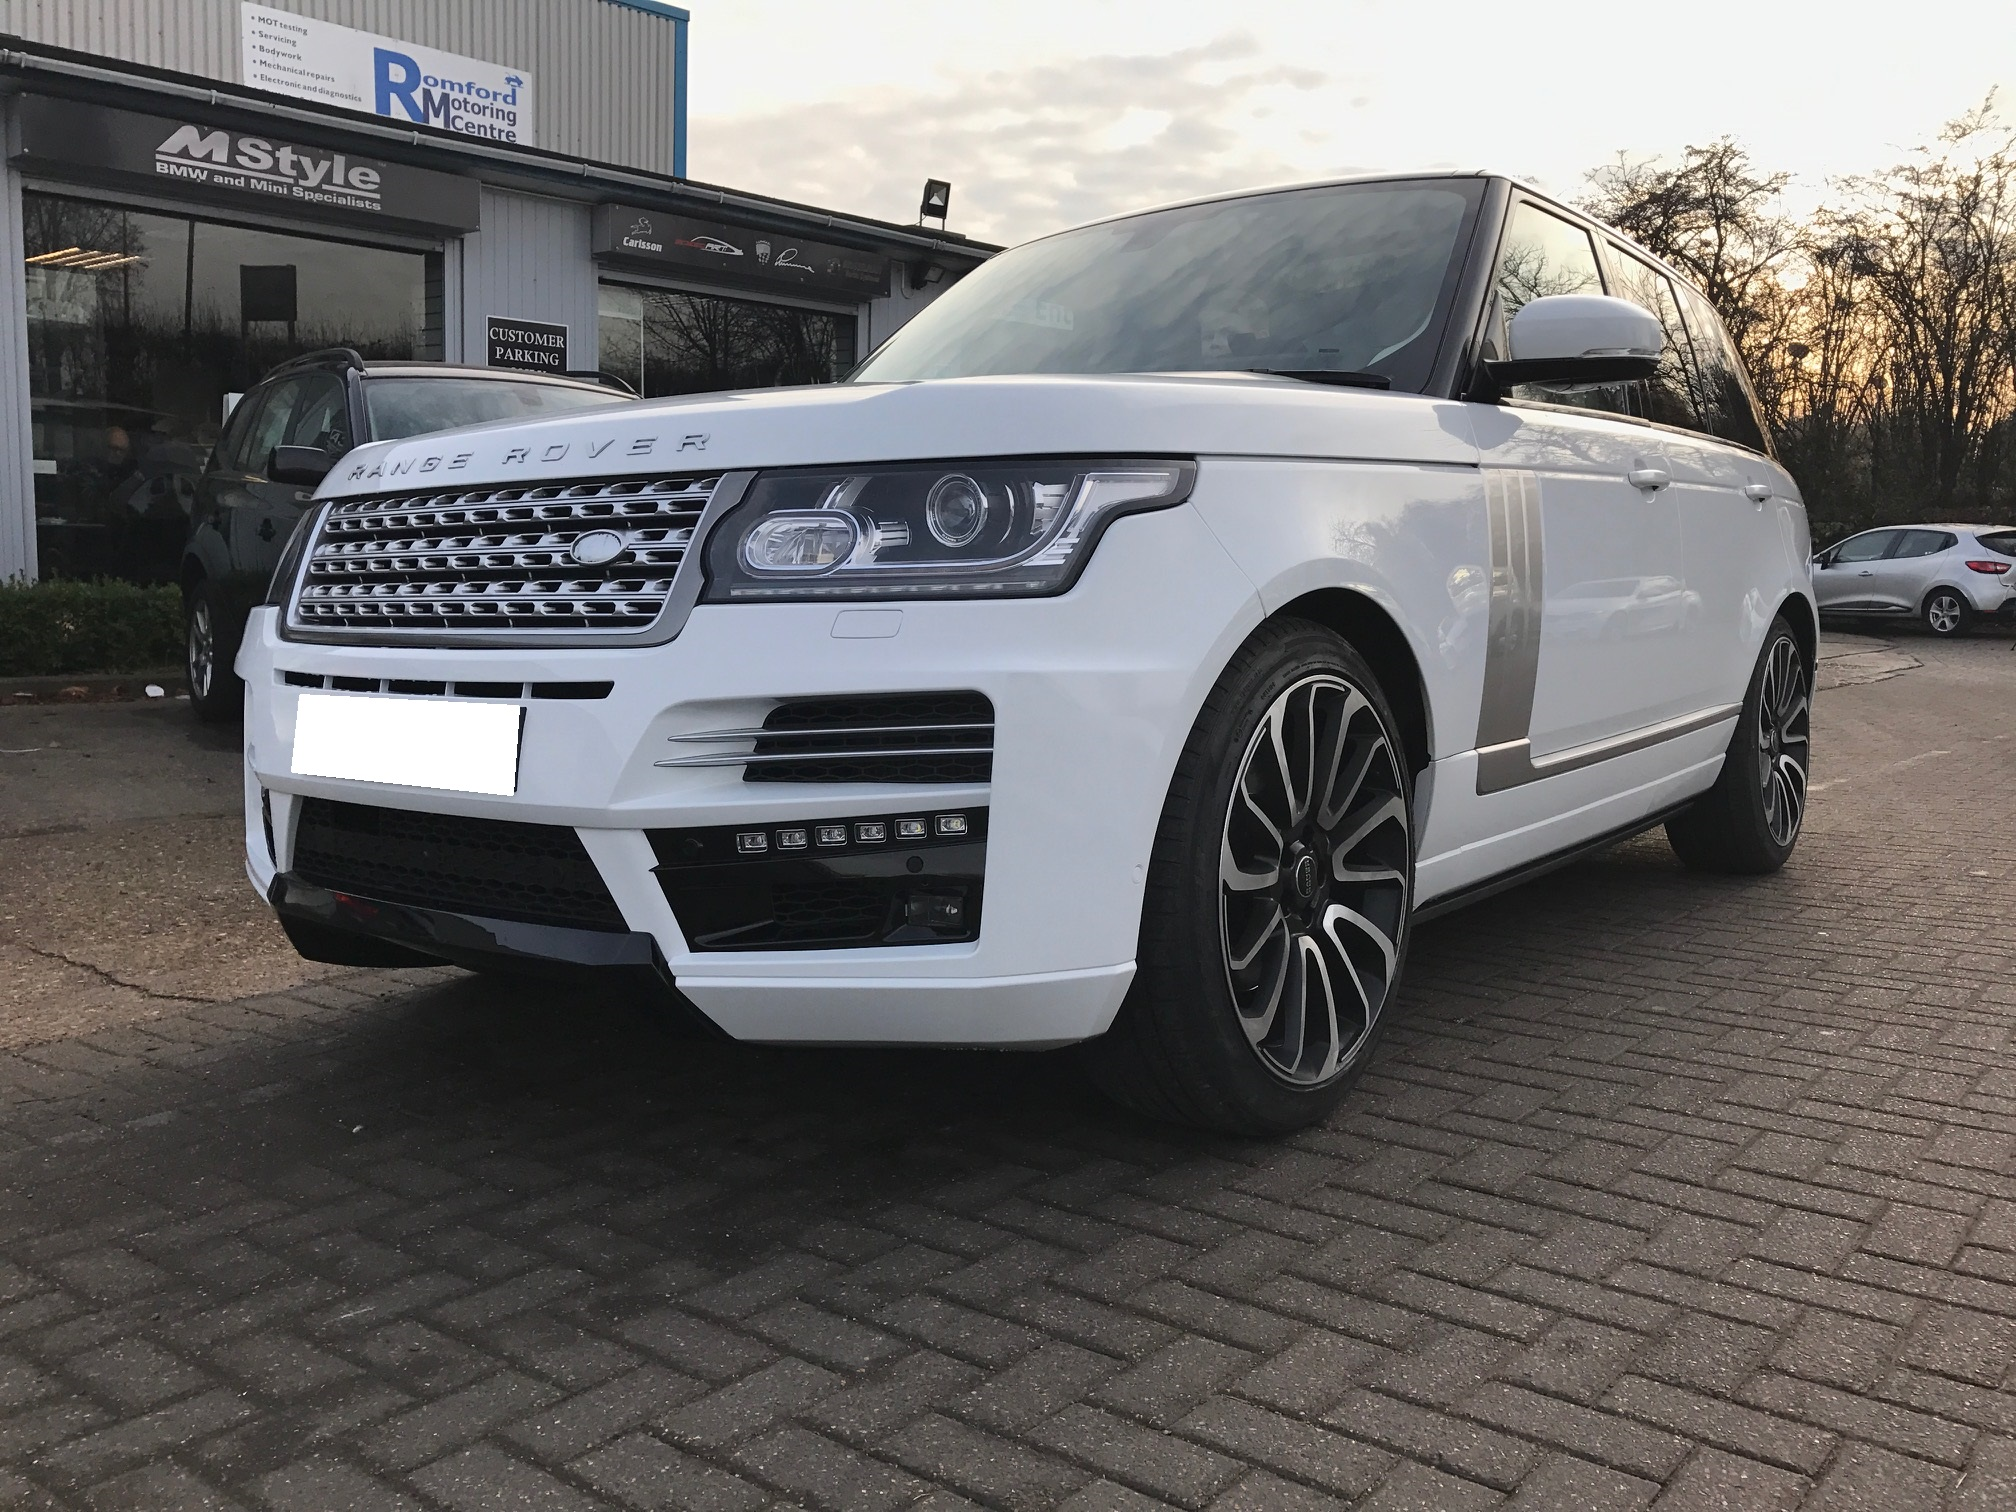 Range Rover - Exterior styling